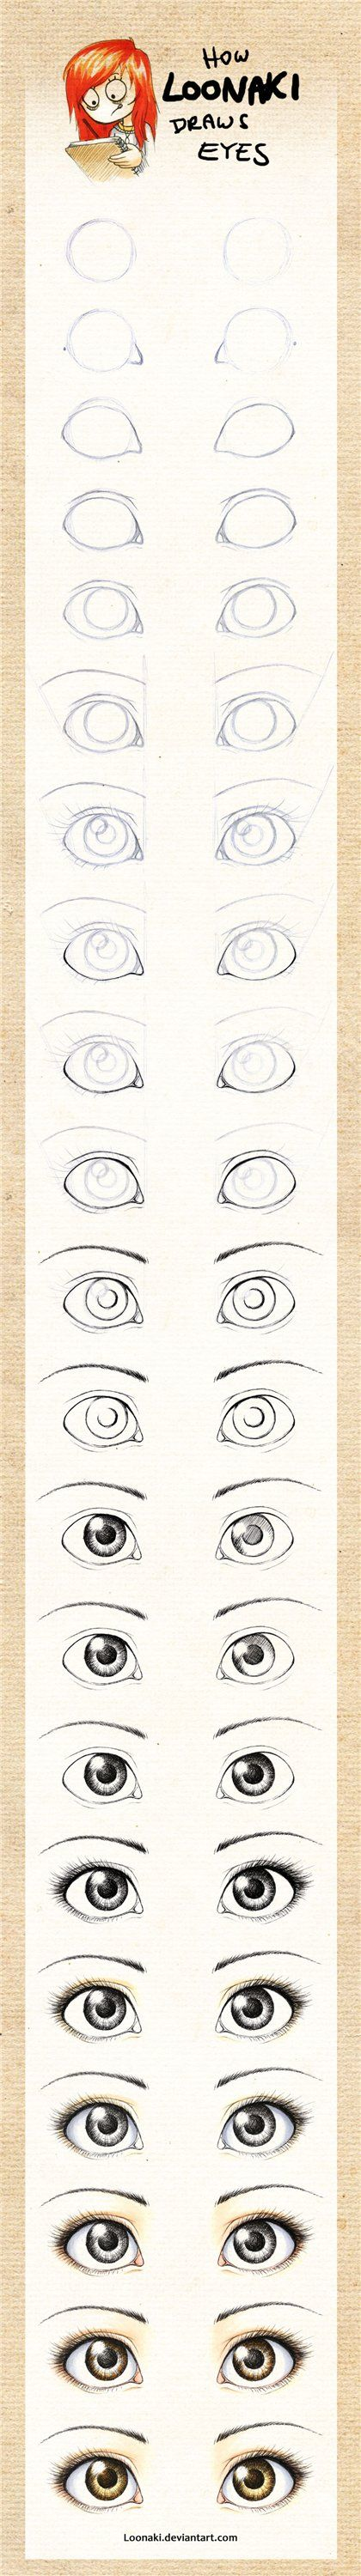 how to draw eyes ~larger and rounder